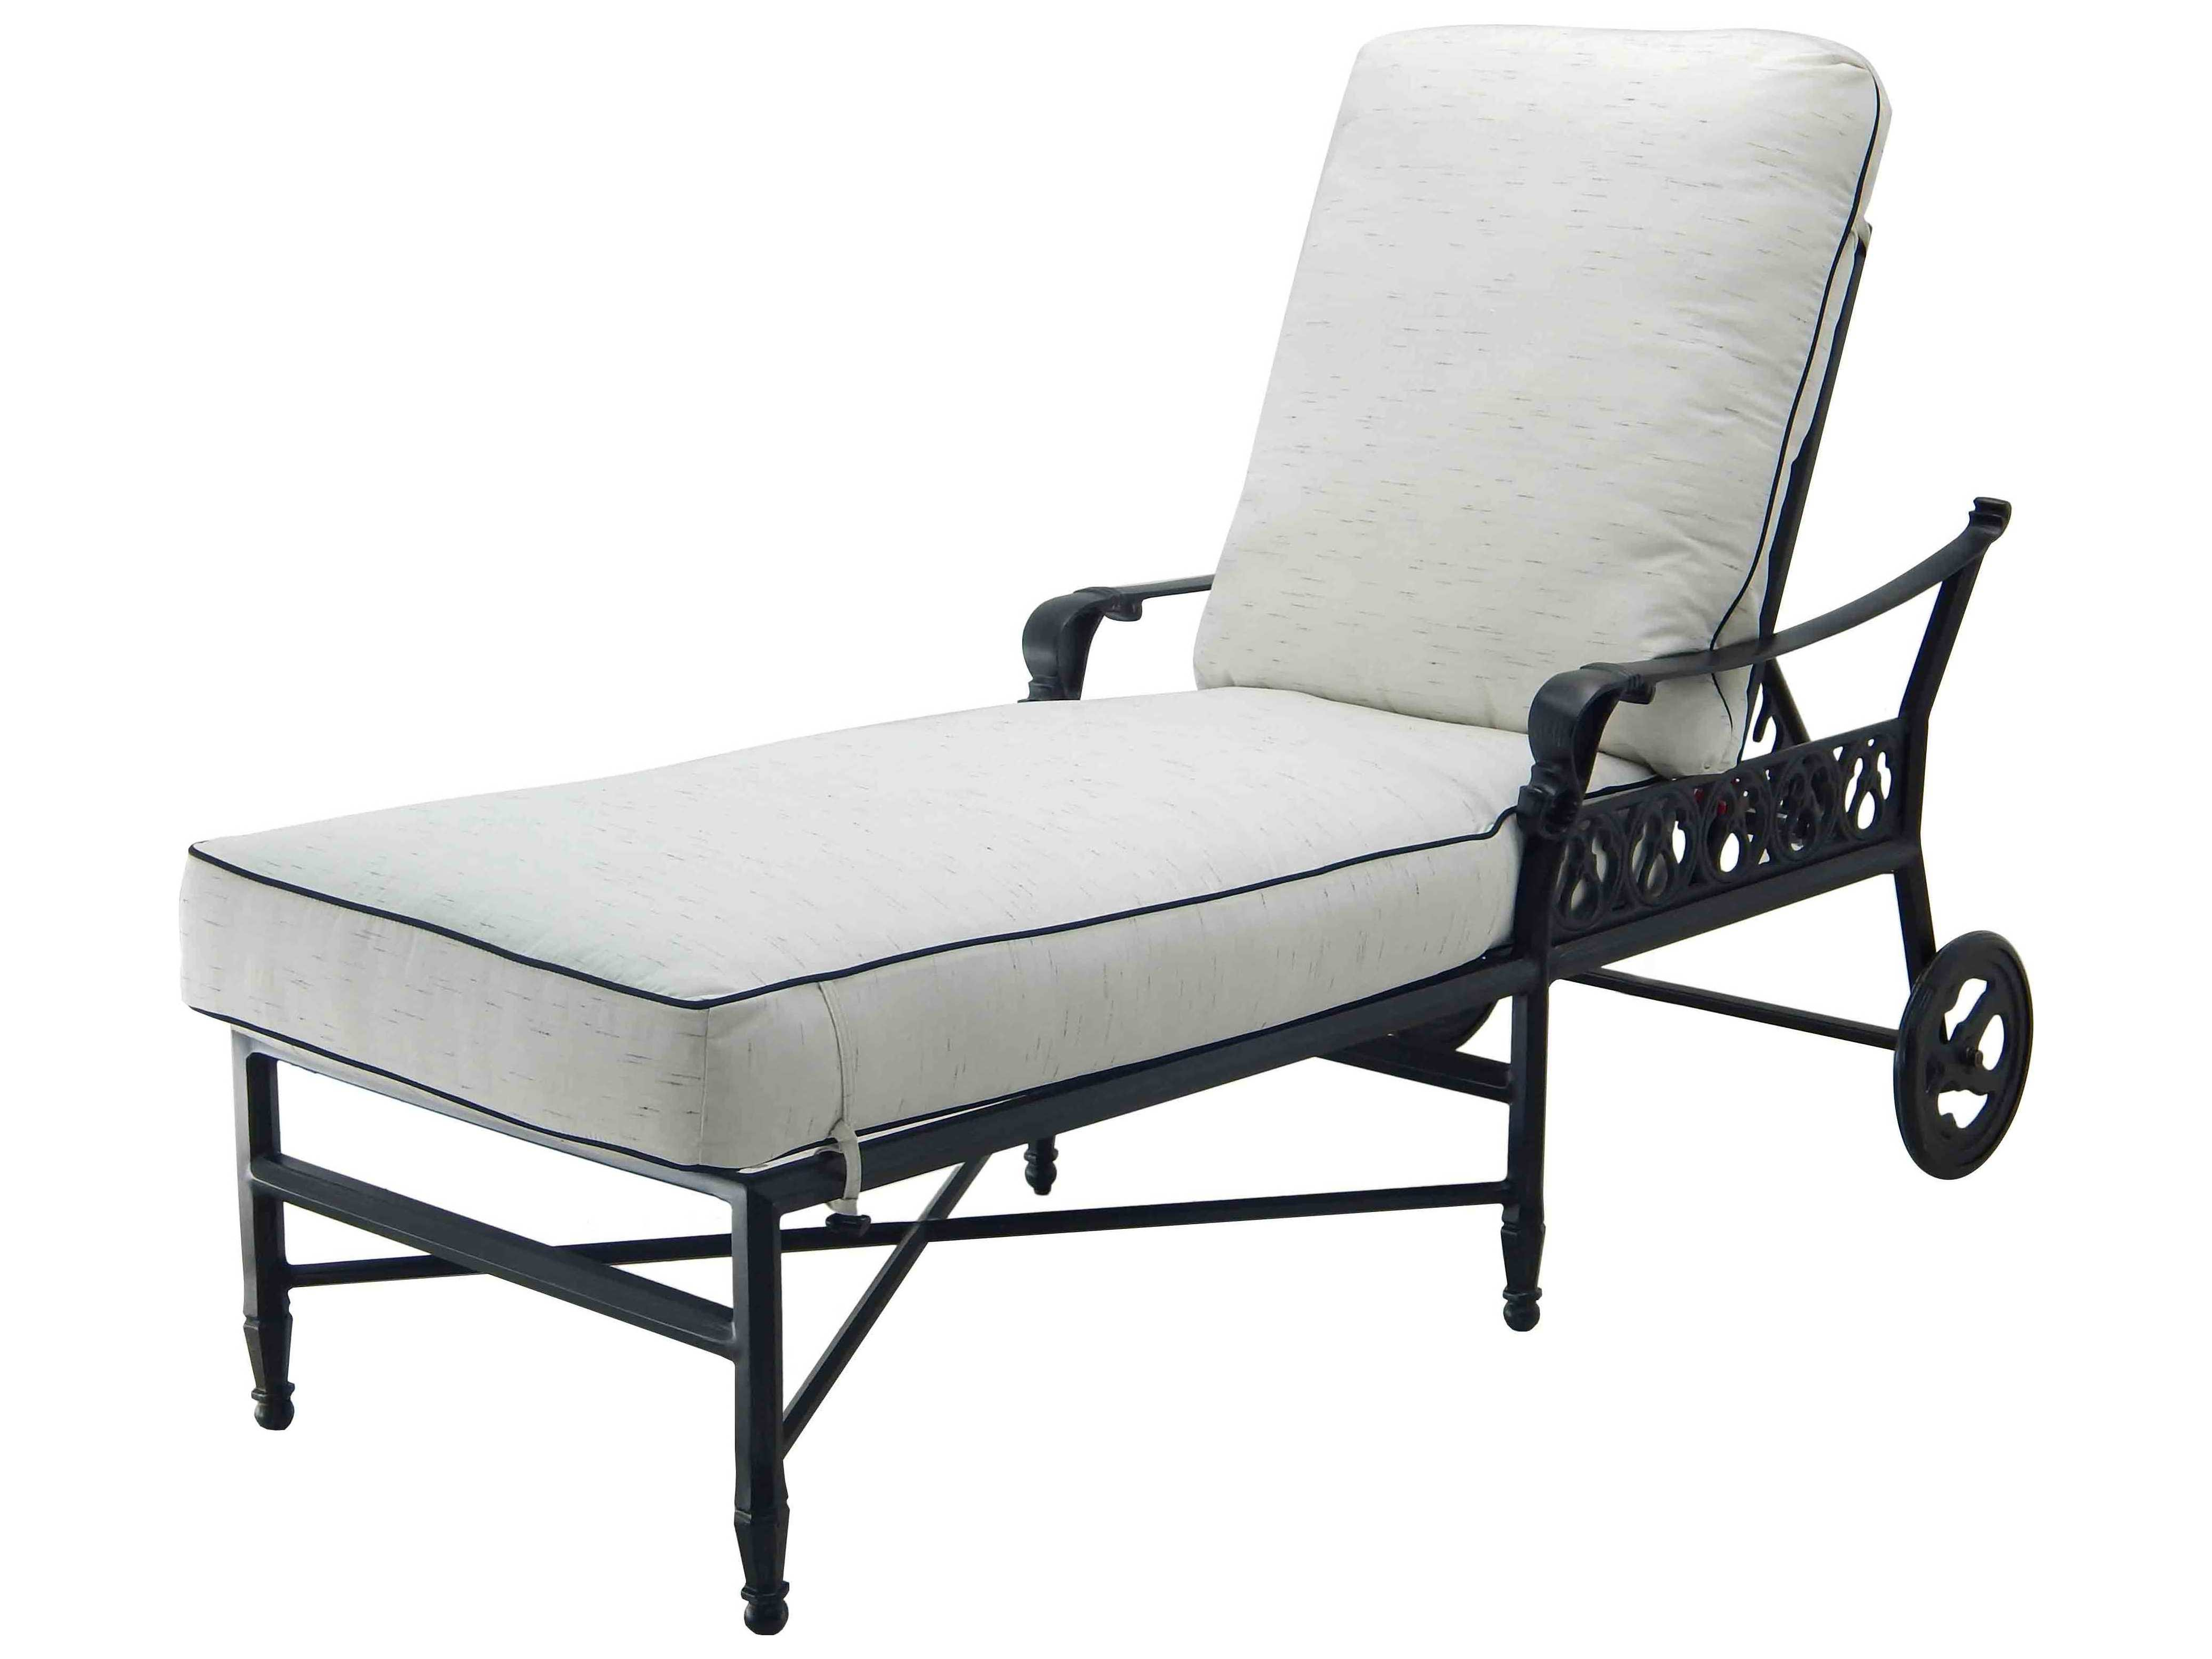 Outdoor Aluminum Adjustable Chaise Lounges Inside Most Current Castelle Biltmore Estate Cast Aluminum Adjustable Chaise Lounge With Wheels (View 18 of 25)